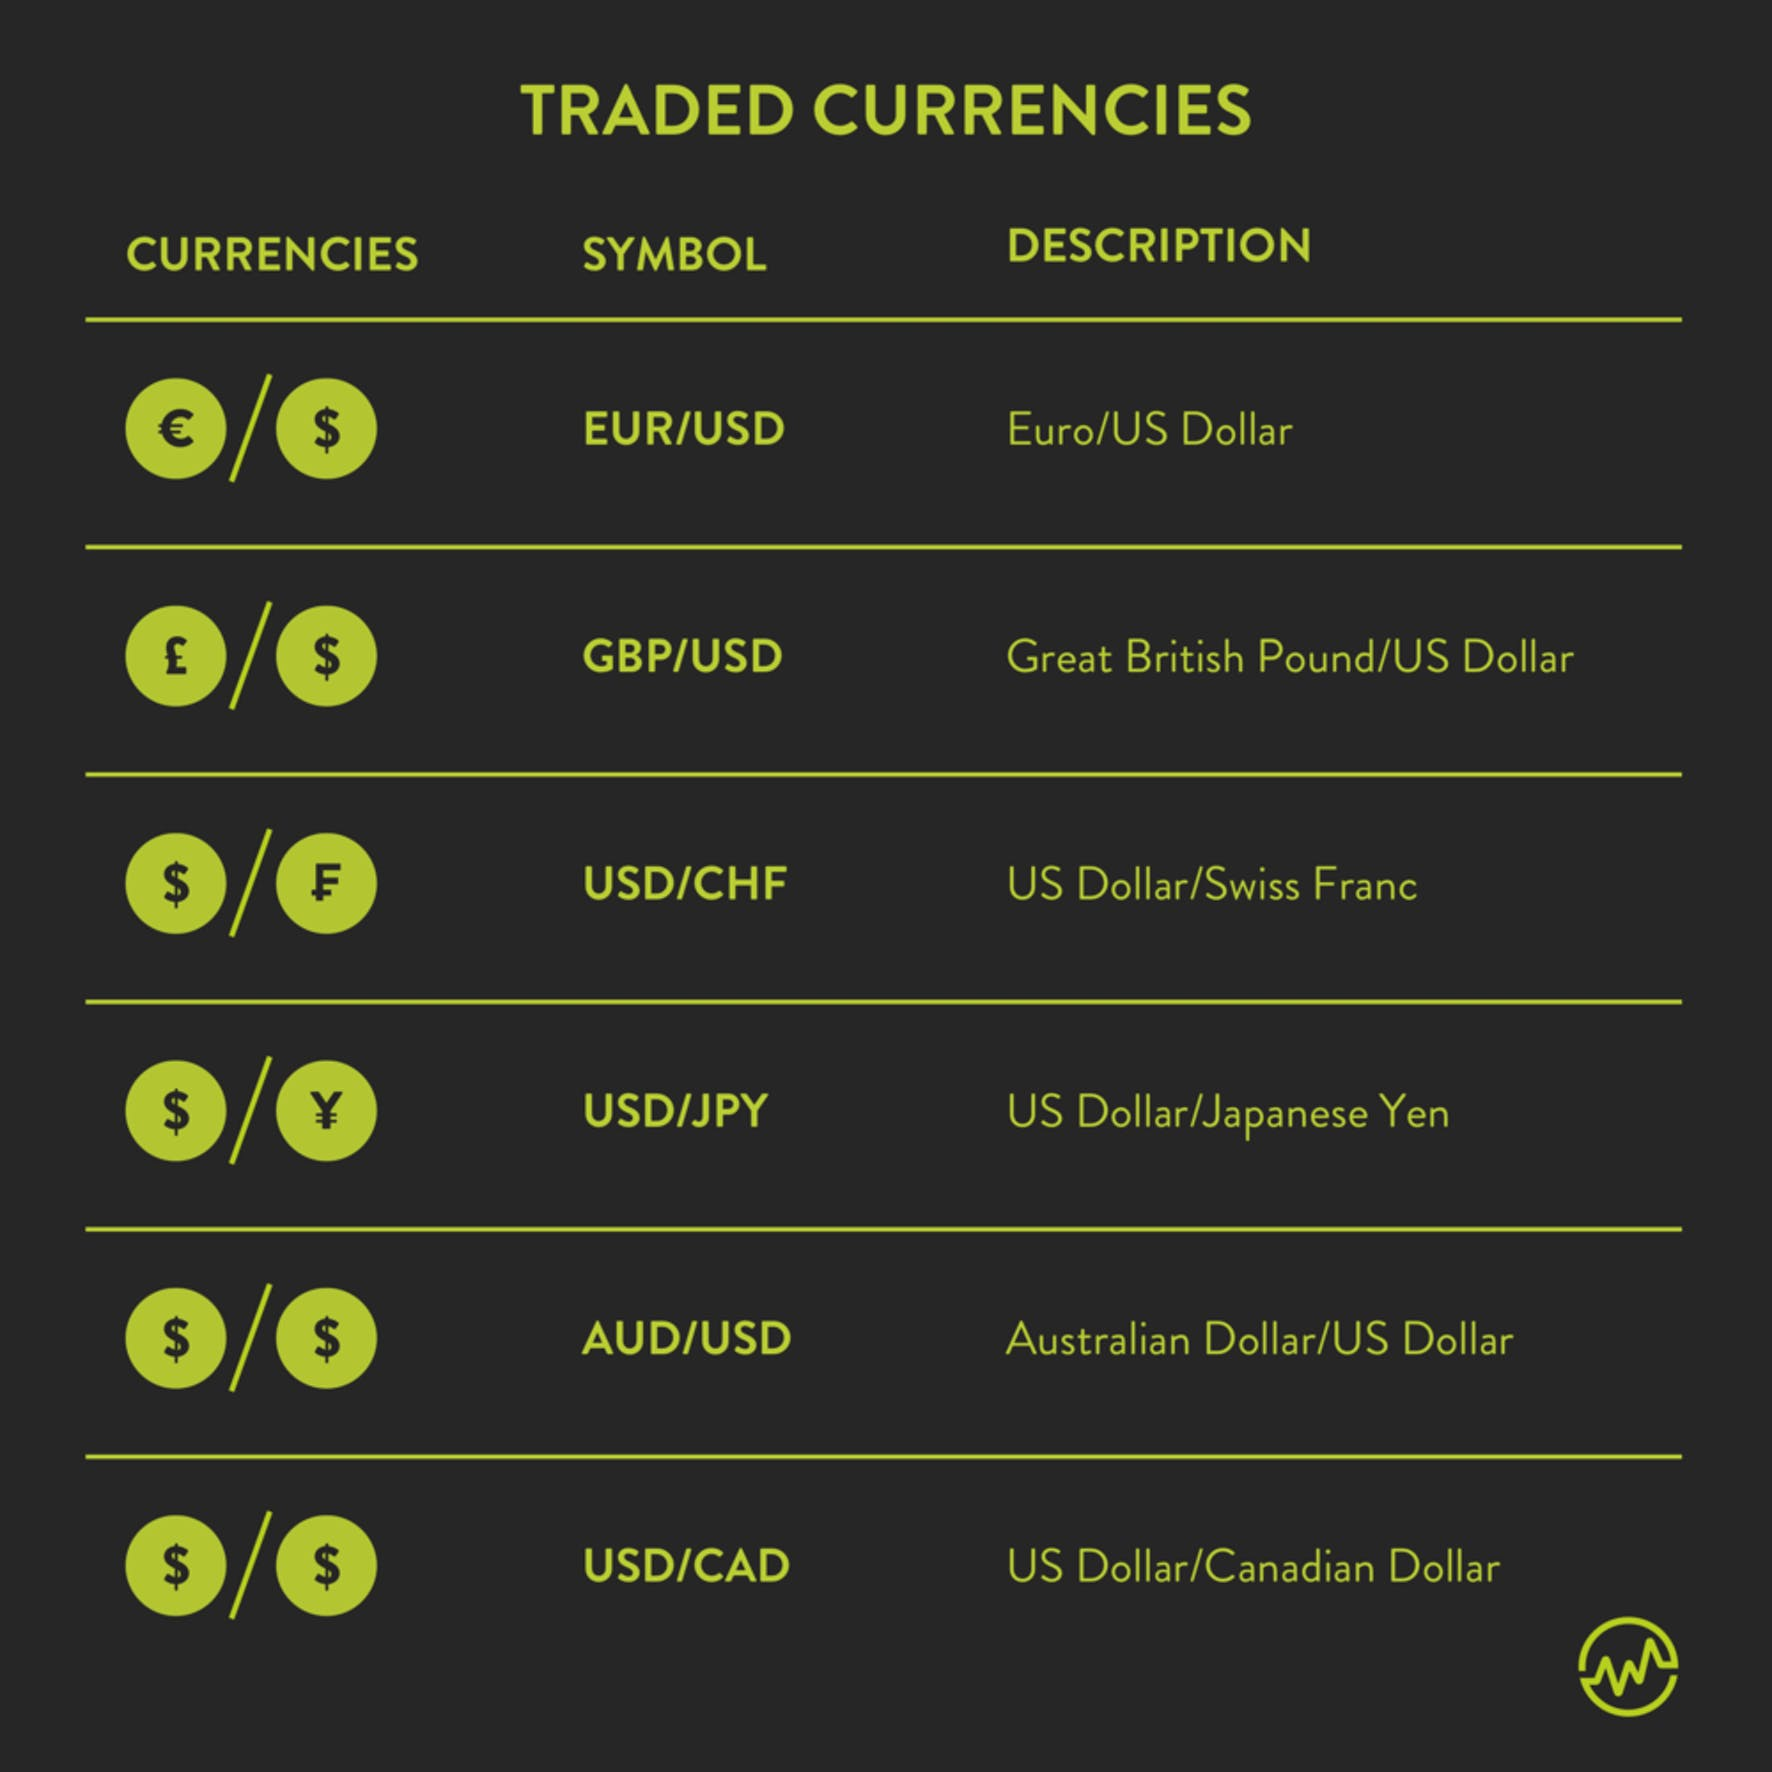 Forex for beginners: Traded currencies in the forex market